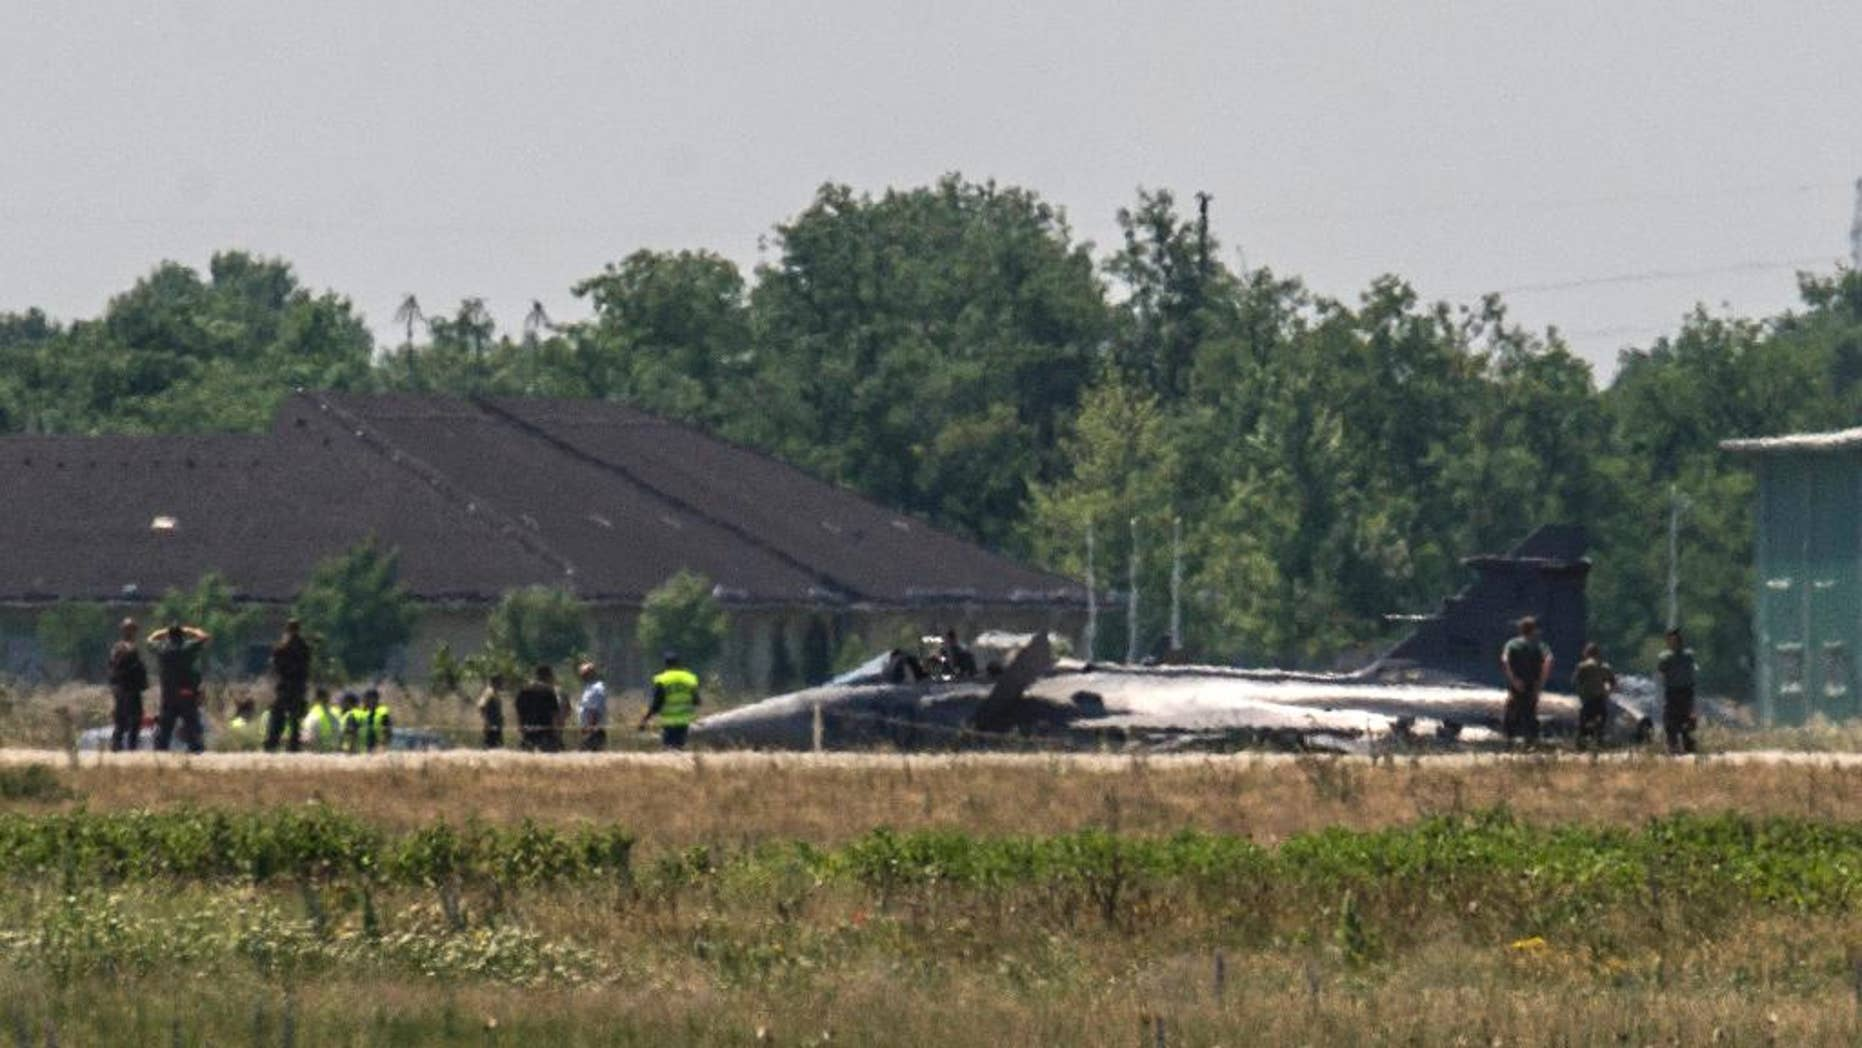 Military experts examine a JAS-39 C Gripen fighter jet of the Hungarian Defence Forces resting on the tarmac of the air base of Kecskemet, 85 kms southeast of Budapest, Hungary, after an emergency landing forced by a technical failure having occurred after take-off  Wednesday, June 10, 2015. The pilot catapulted successfully, he is currently kept under medical control. (Sandor Ujvari/MTI via AP)